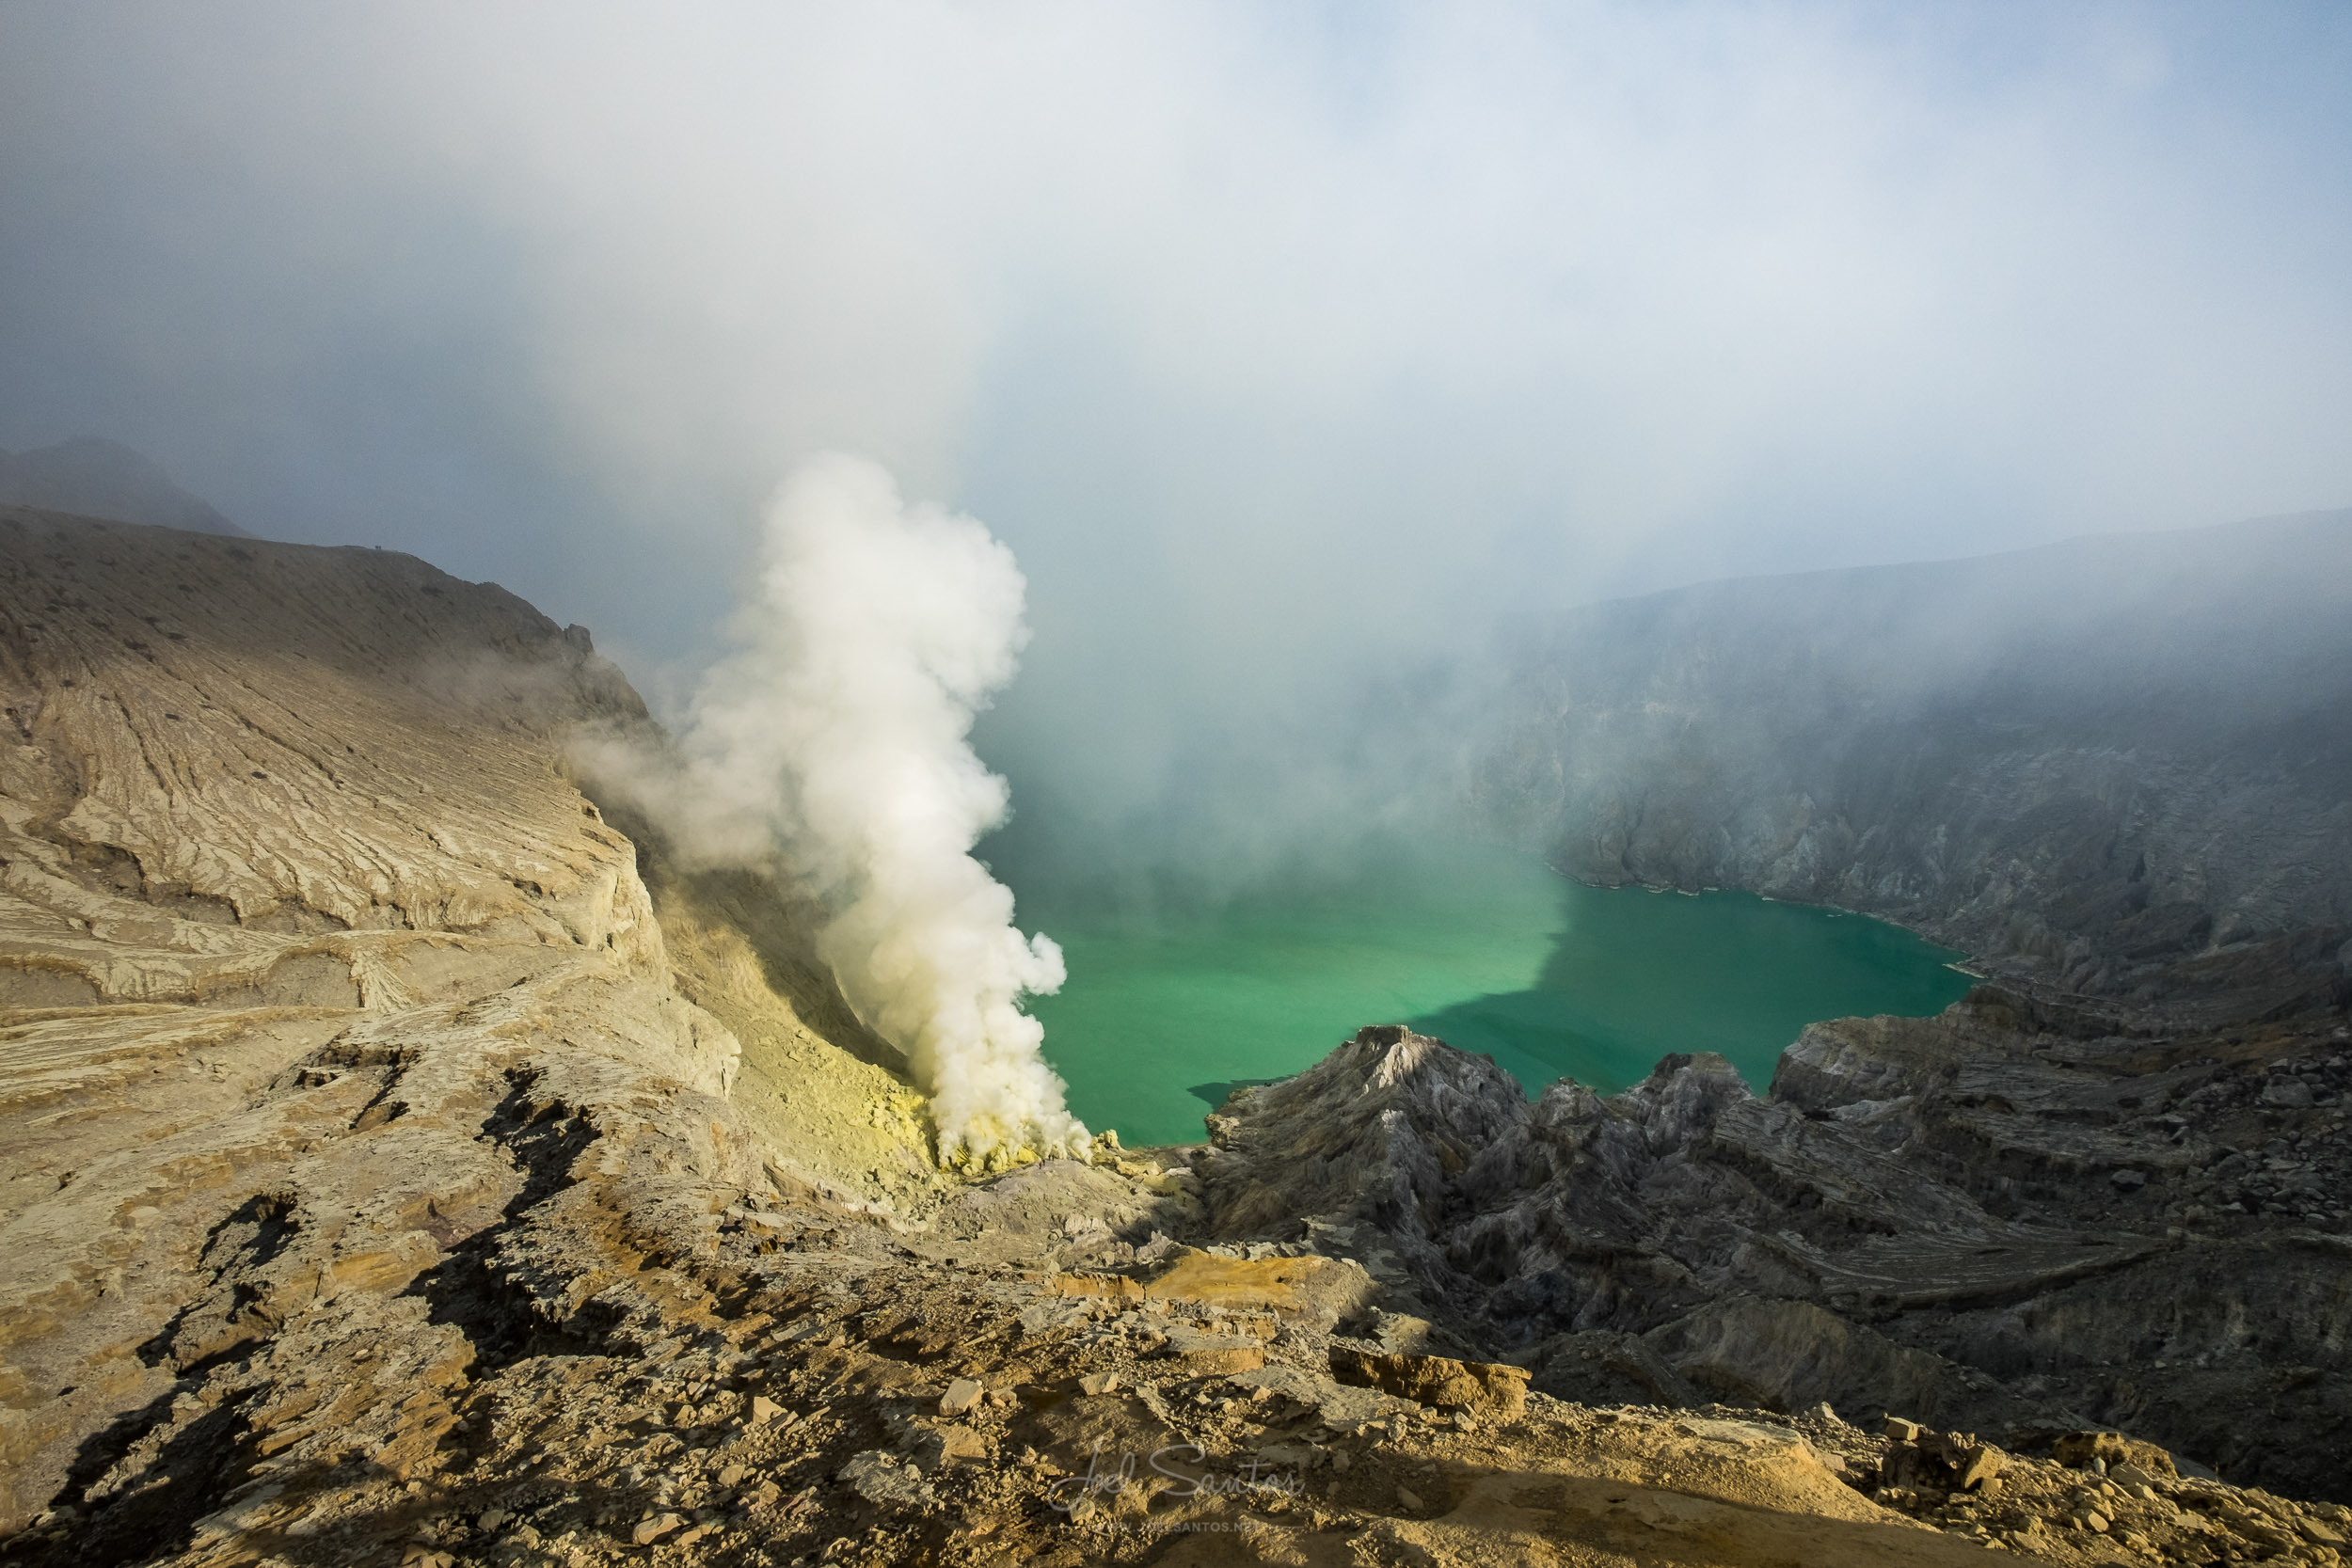 Kawah Ijen volcanic crater with turquoise blue acidal lake and s